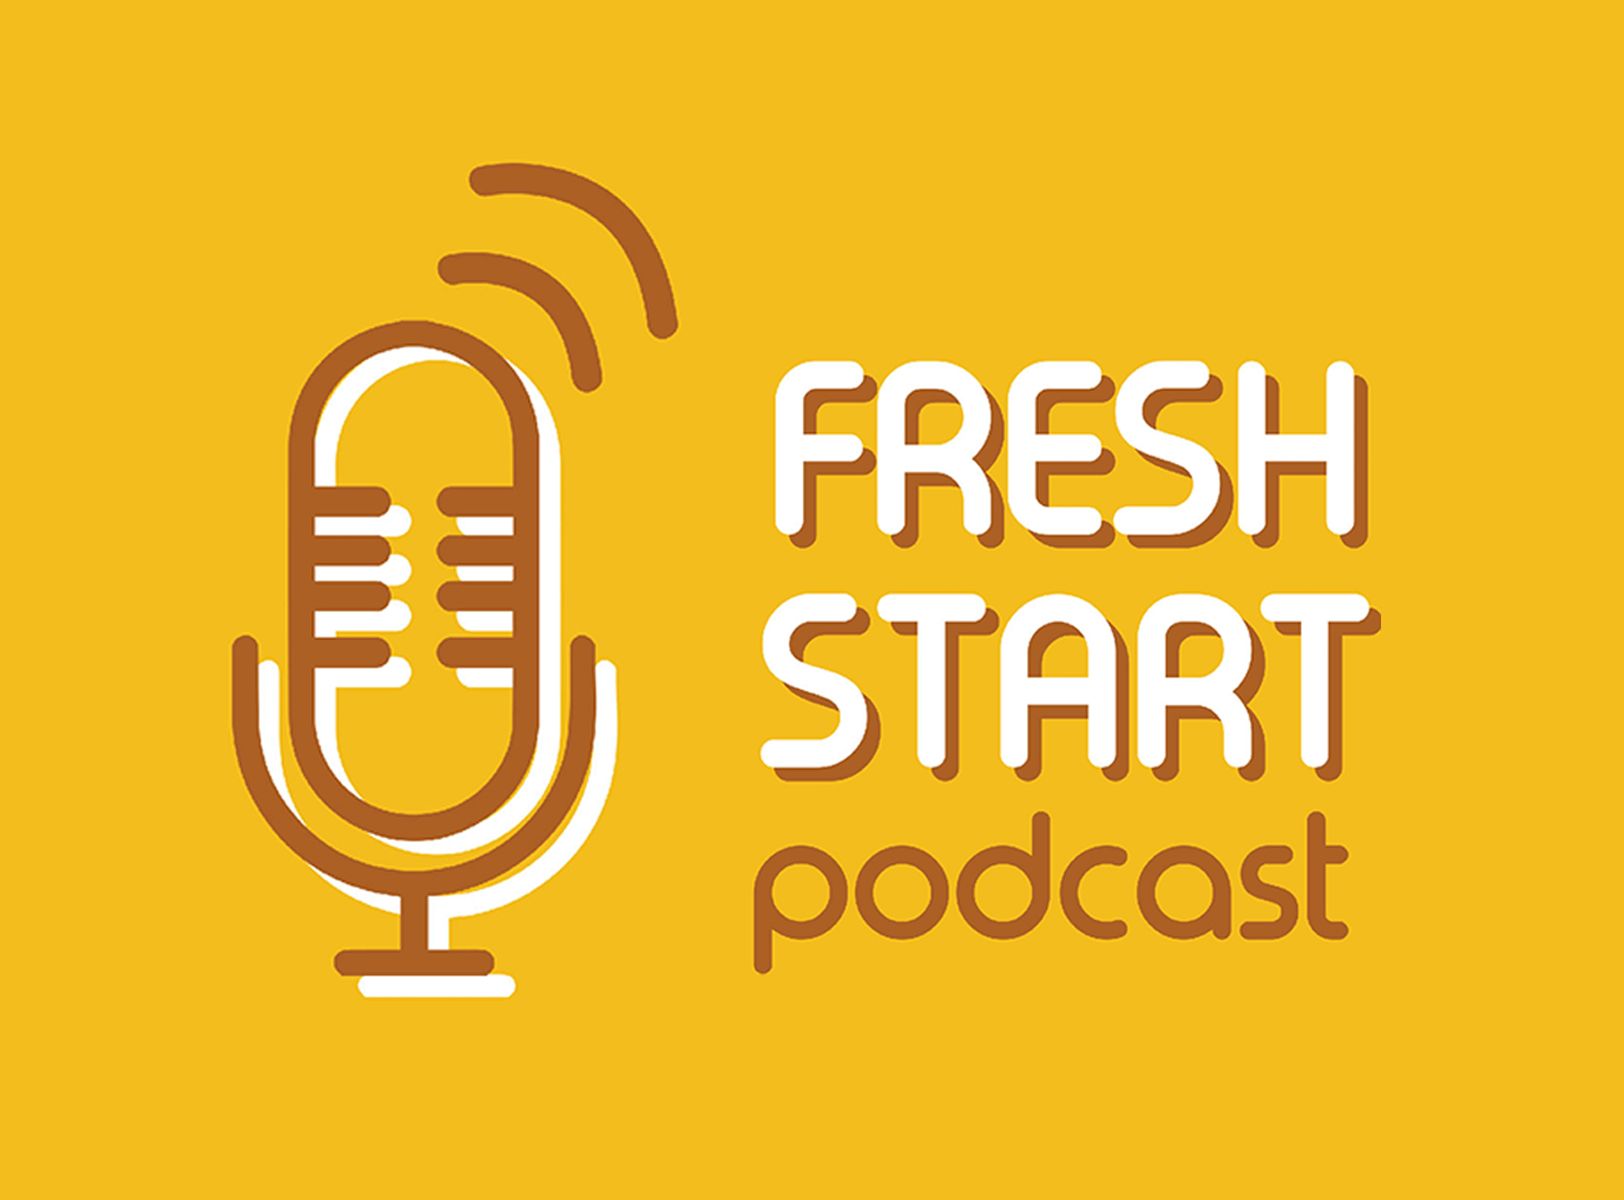 Fresh Start: Podcast News (7/4/2018 Wed.)